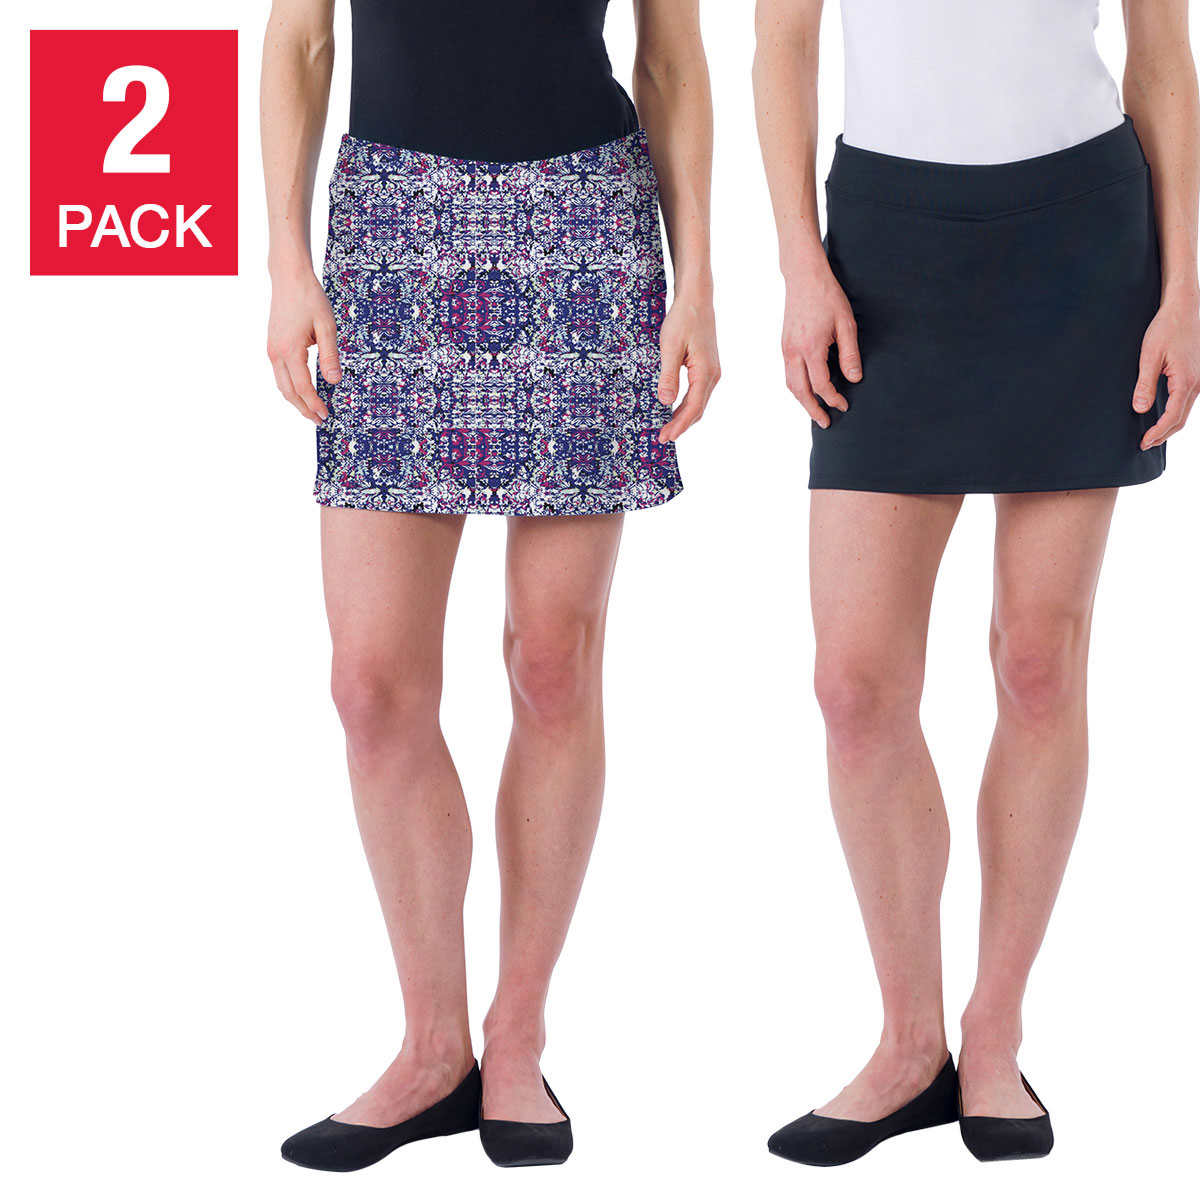 4ed0a40dd8 Tranquility by Colorado Clothing Ladies' Skort, 2-pack